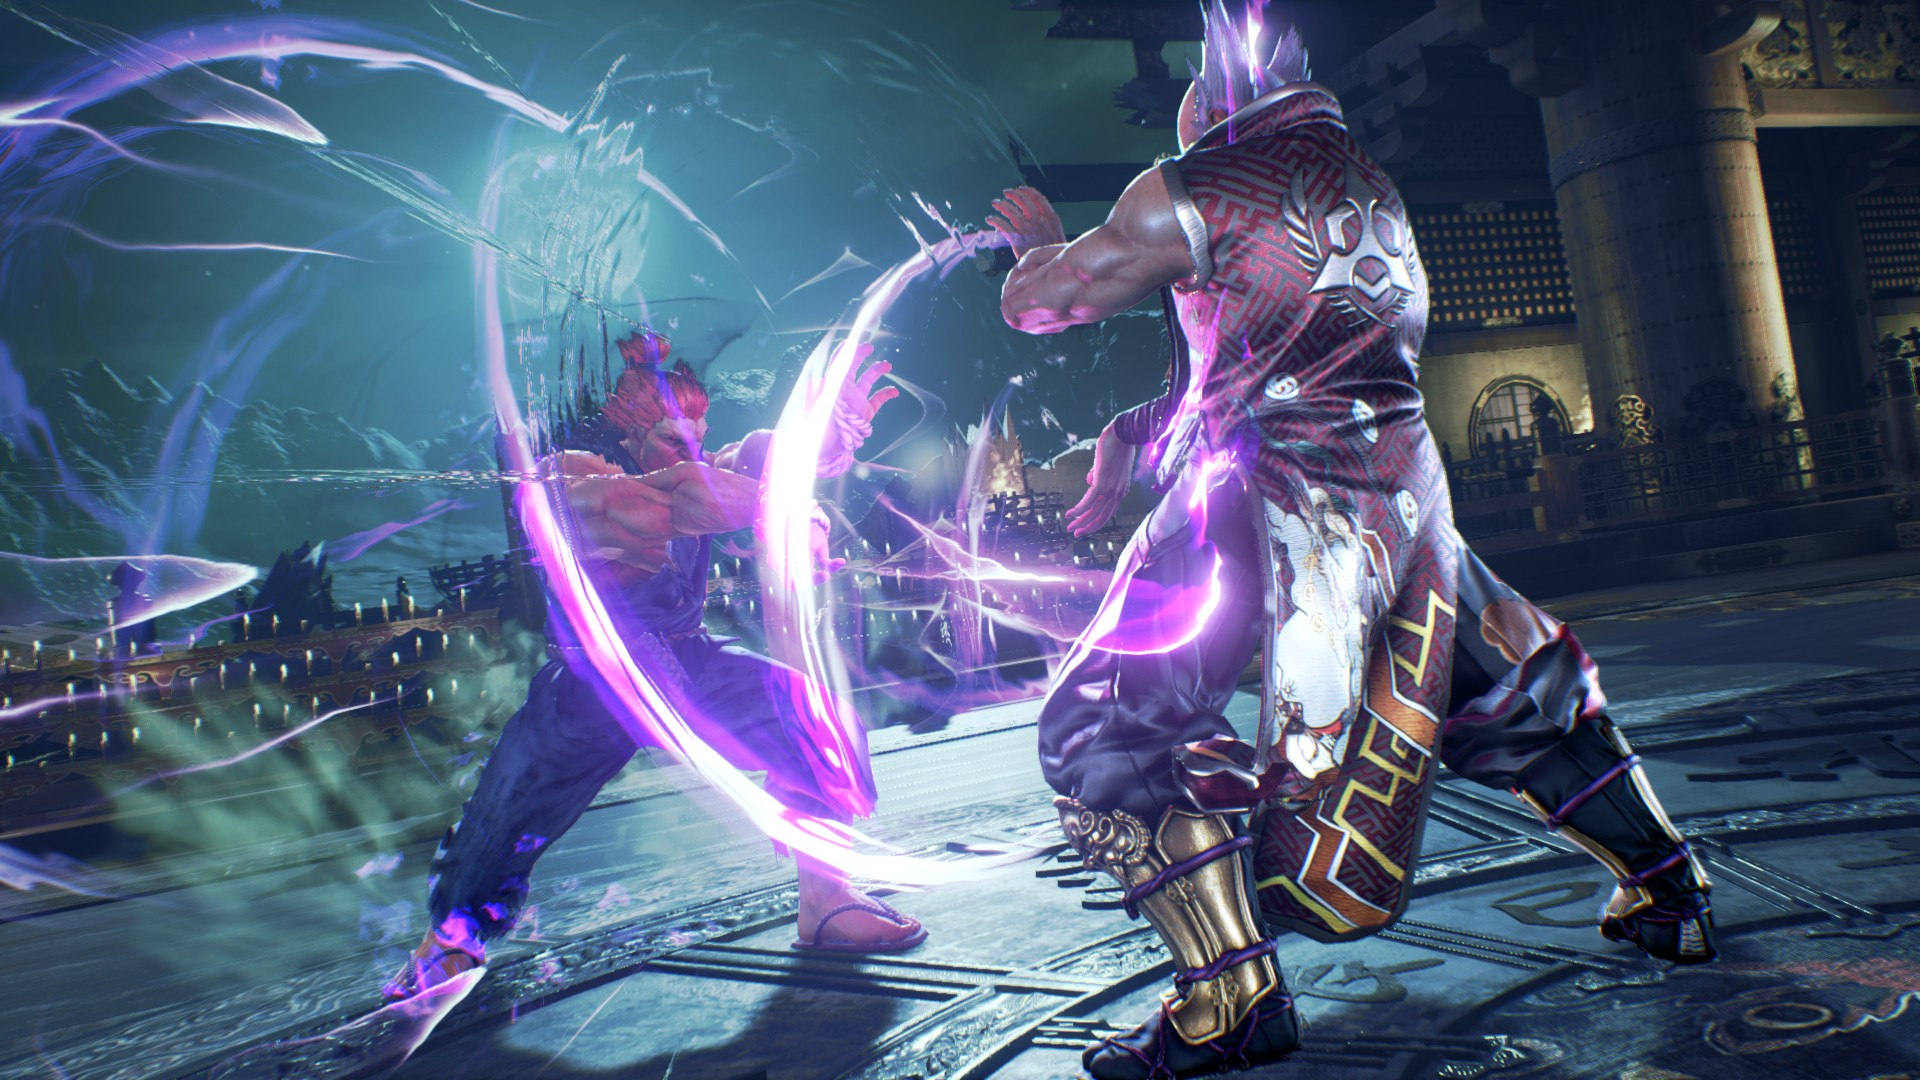 Tekken 7 Reportedly Has Much Higher Input Lag on PS4 When